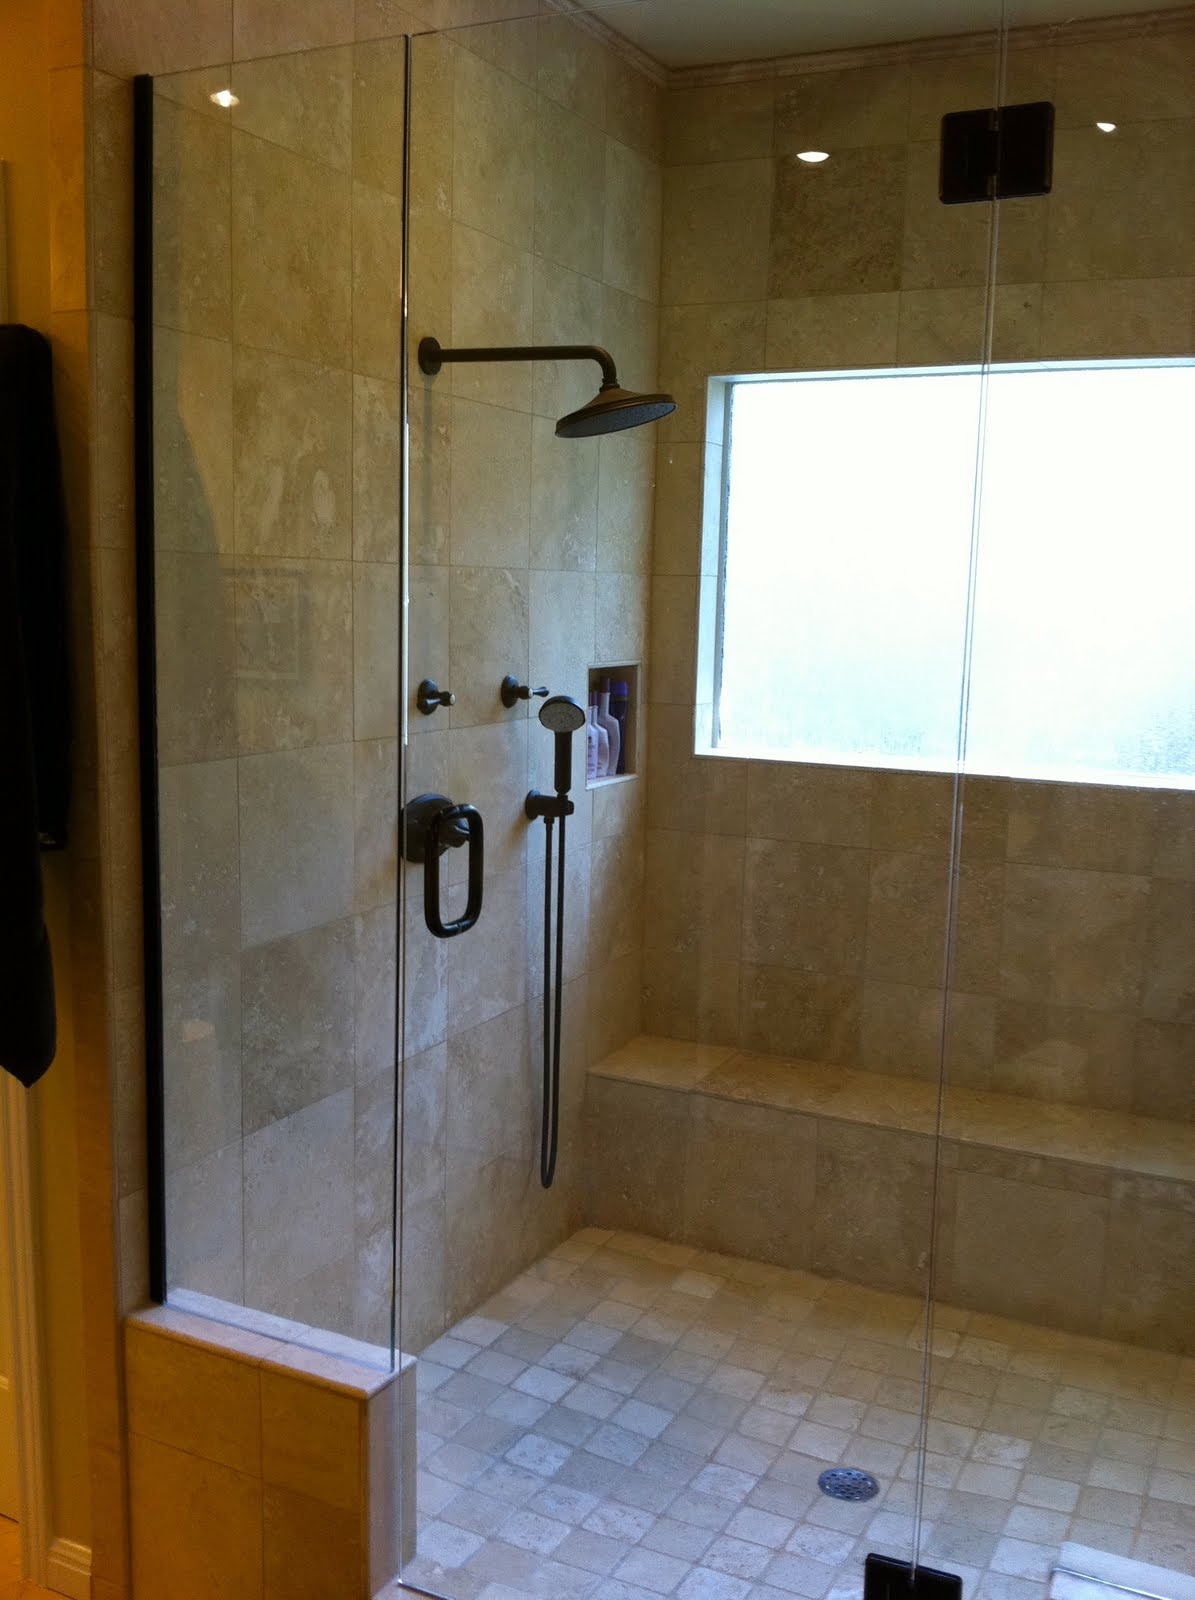 Bathroom Ideas With Double Shower : Remodelaholic master bathroom remodel with double shower